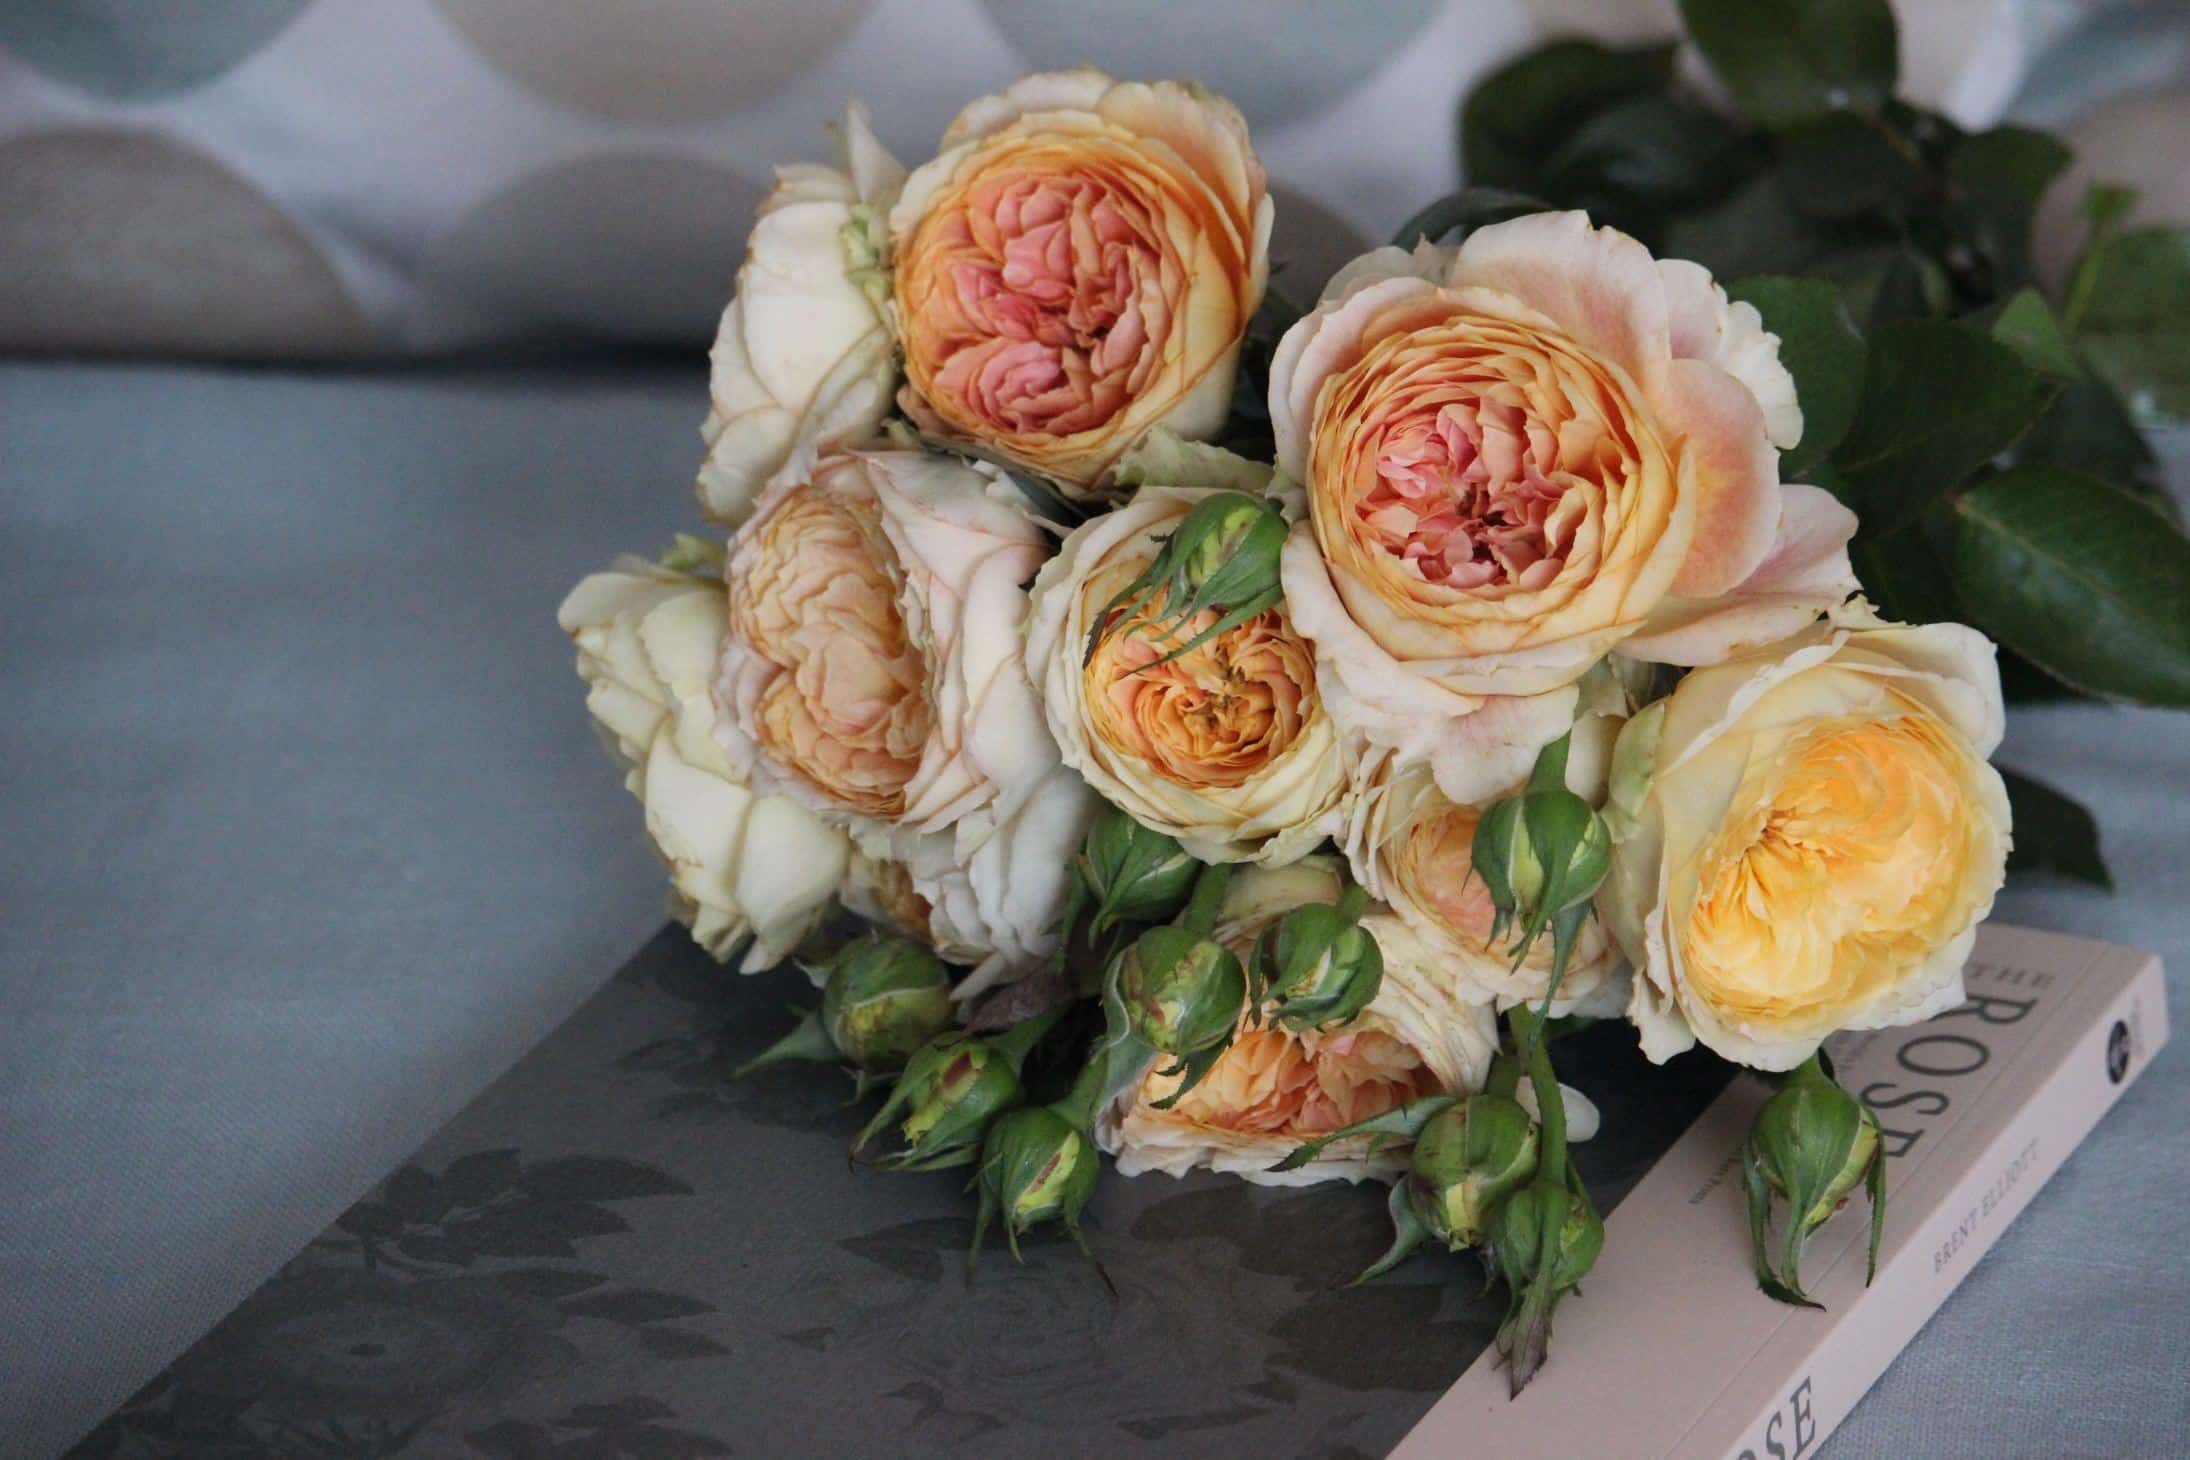 Old Garden Roses, all about old garden roses, guide to old garden roses